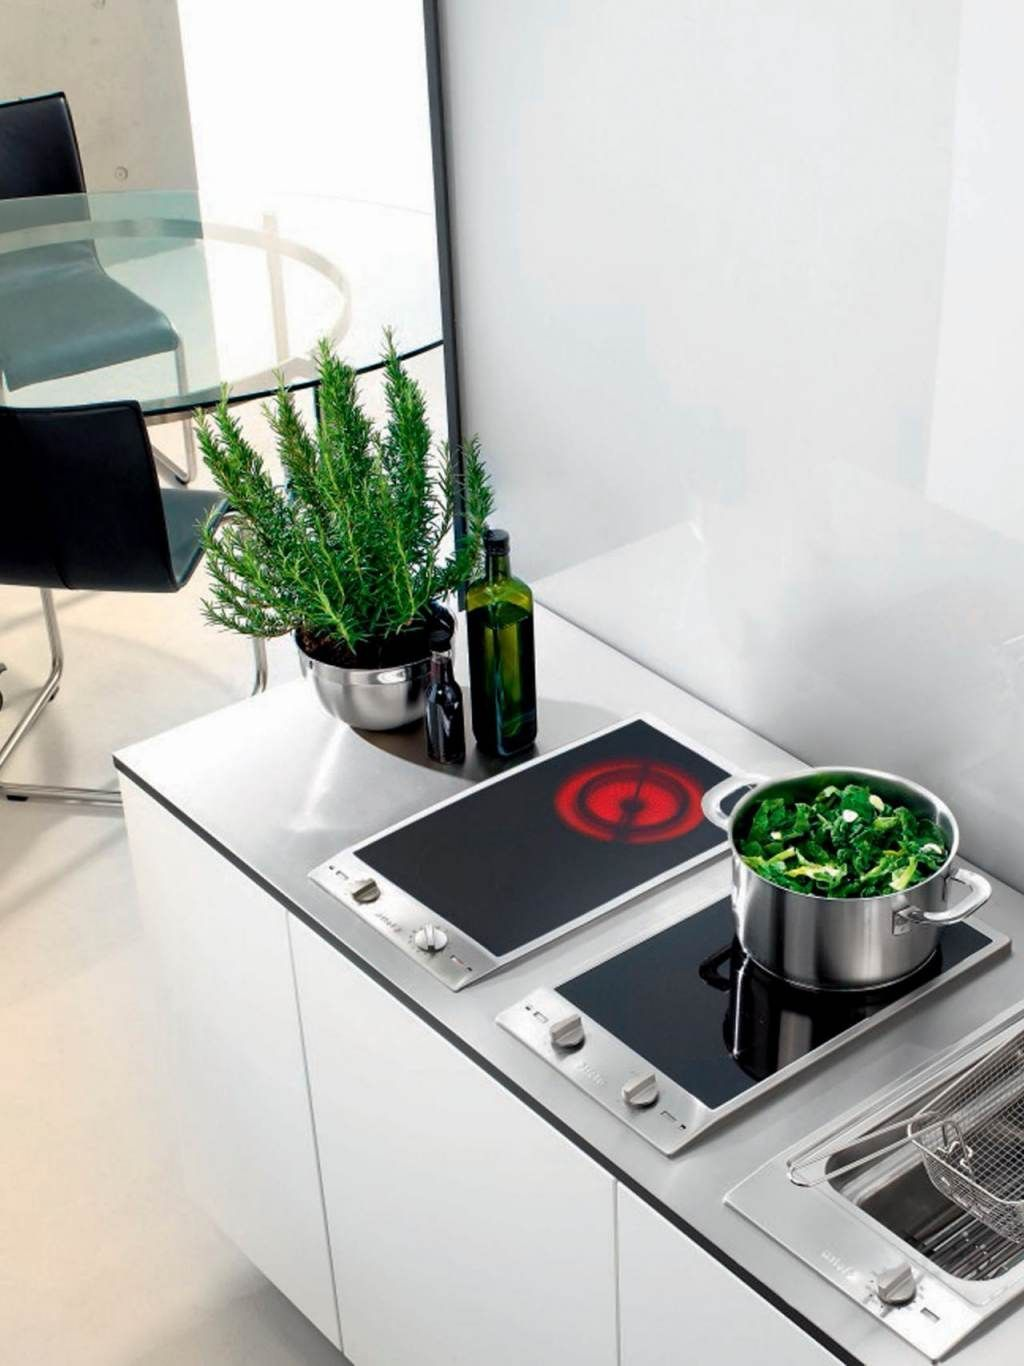 Top Advantages and Disadvantages of Induction Cooktops